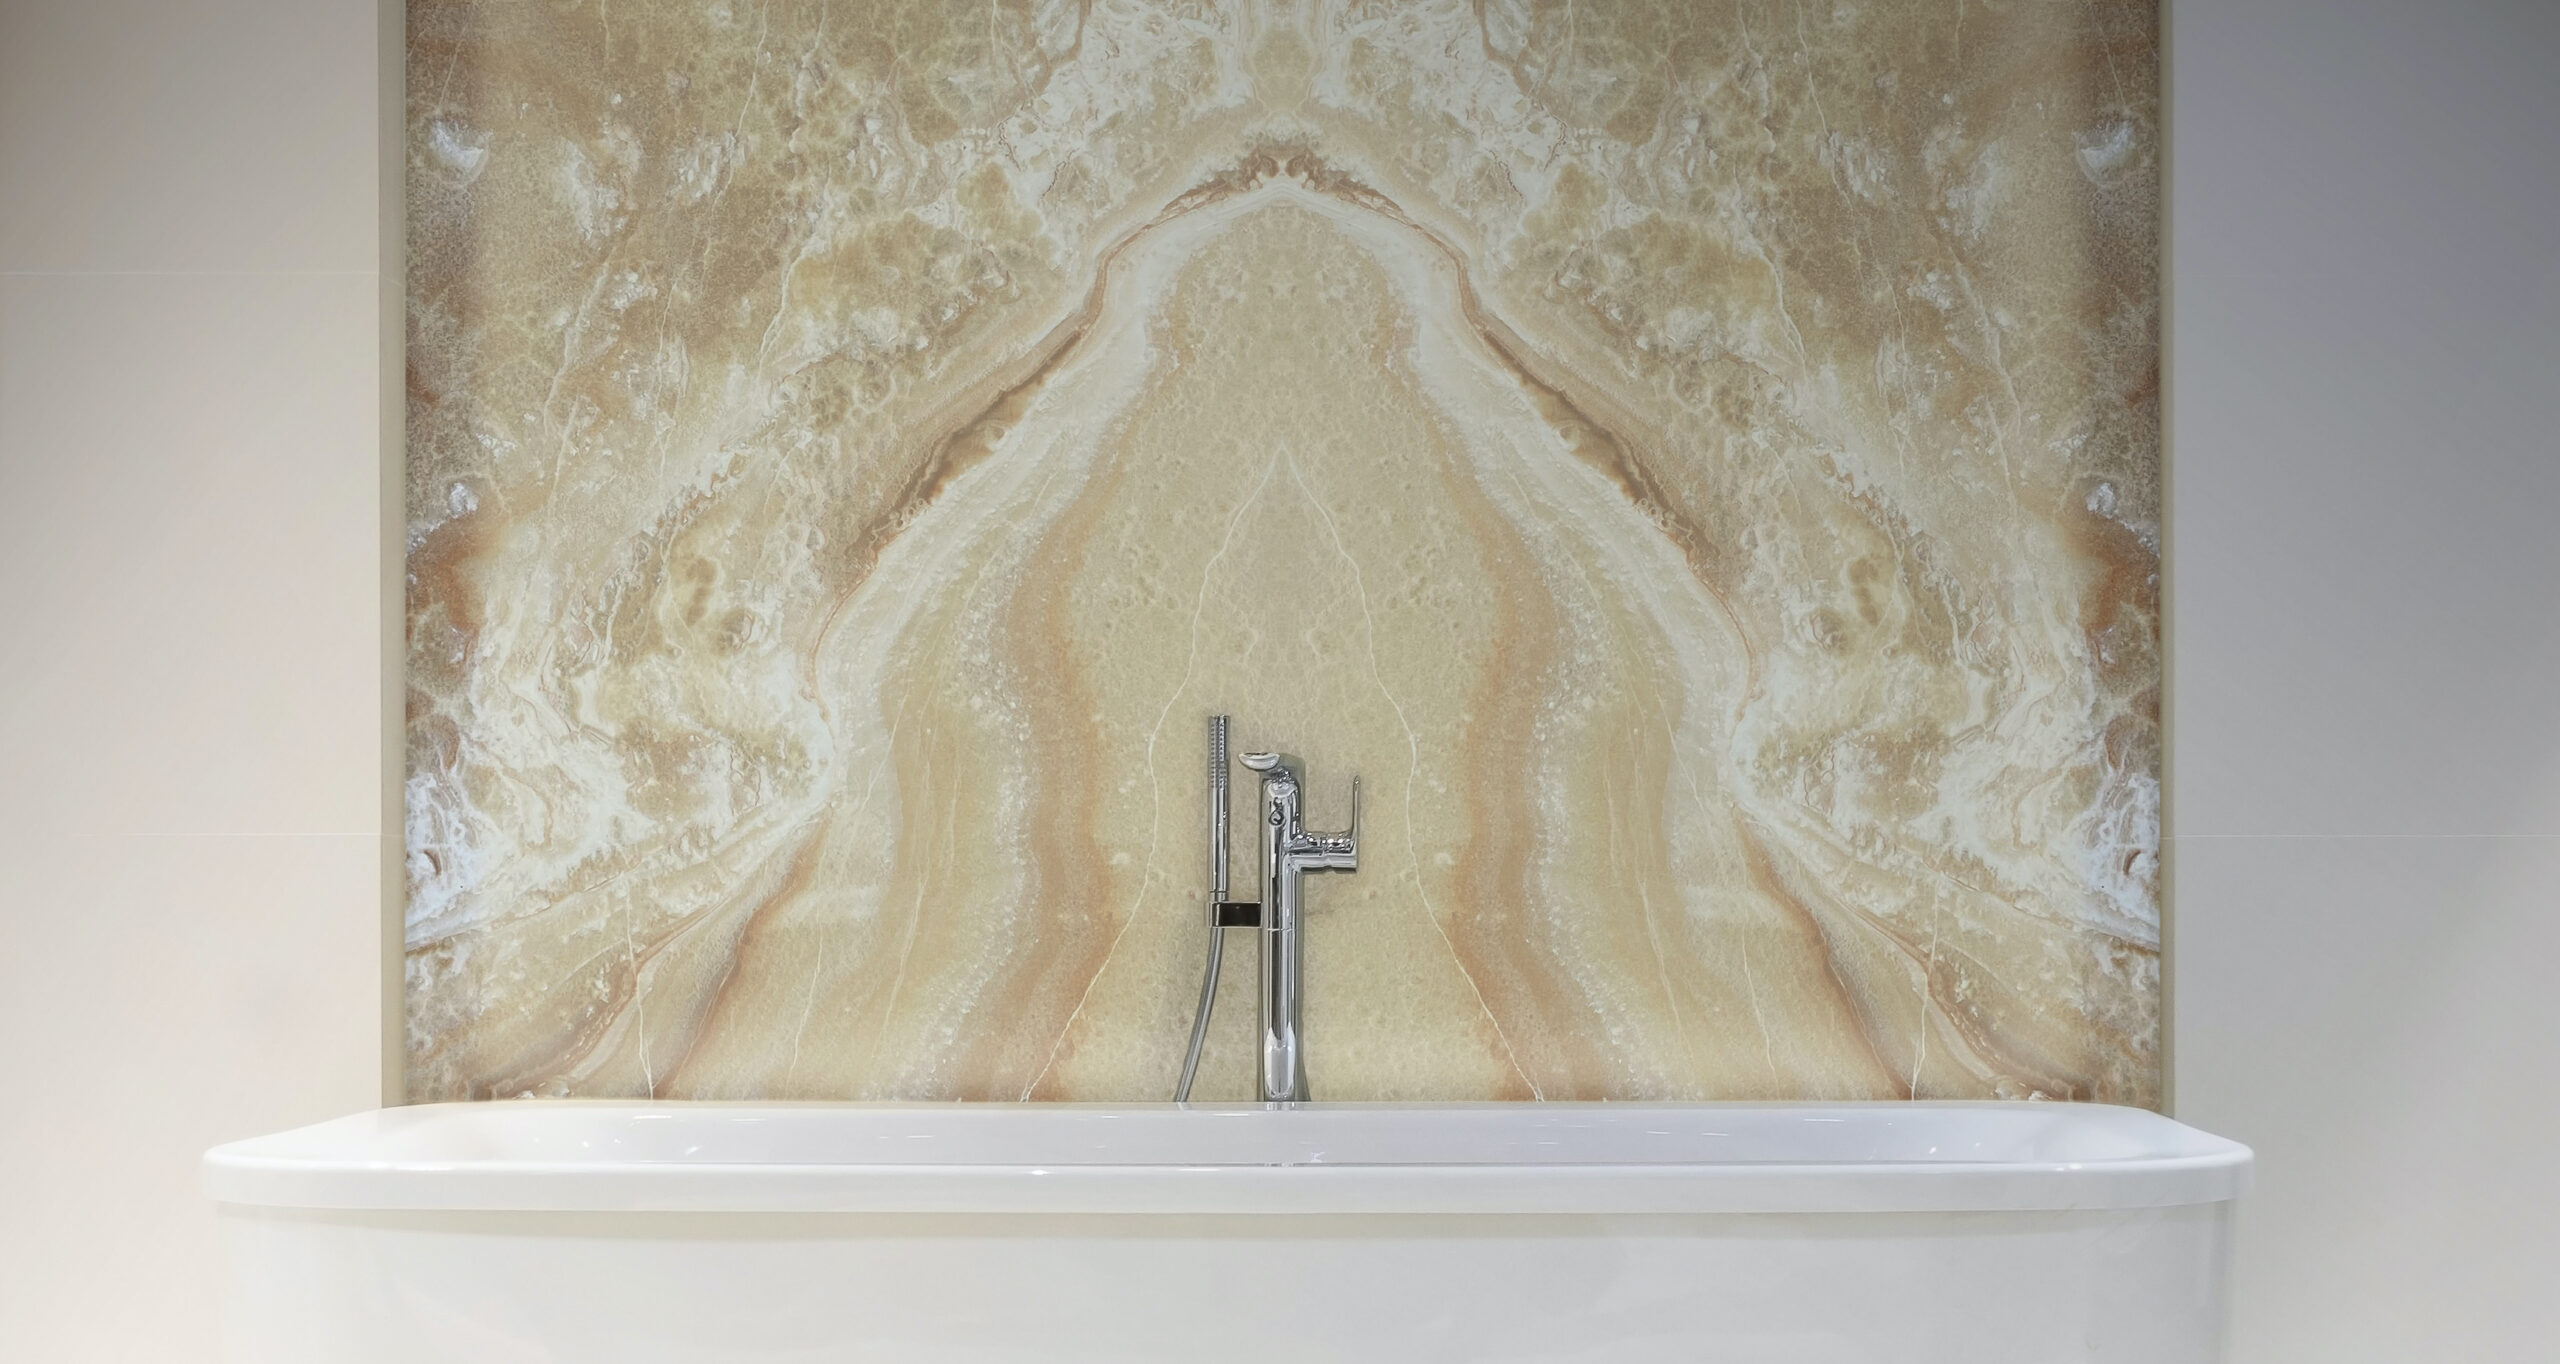 The Beauty of Onyx Surfaces